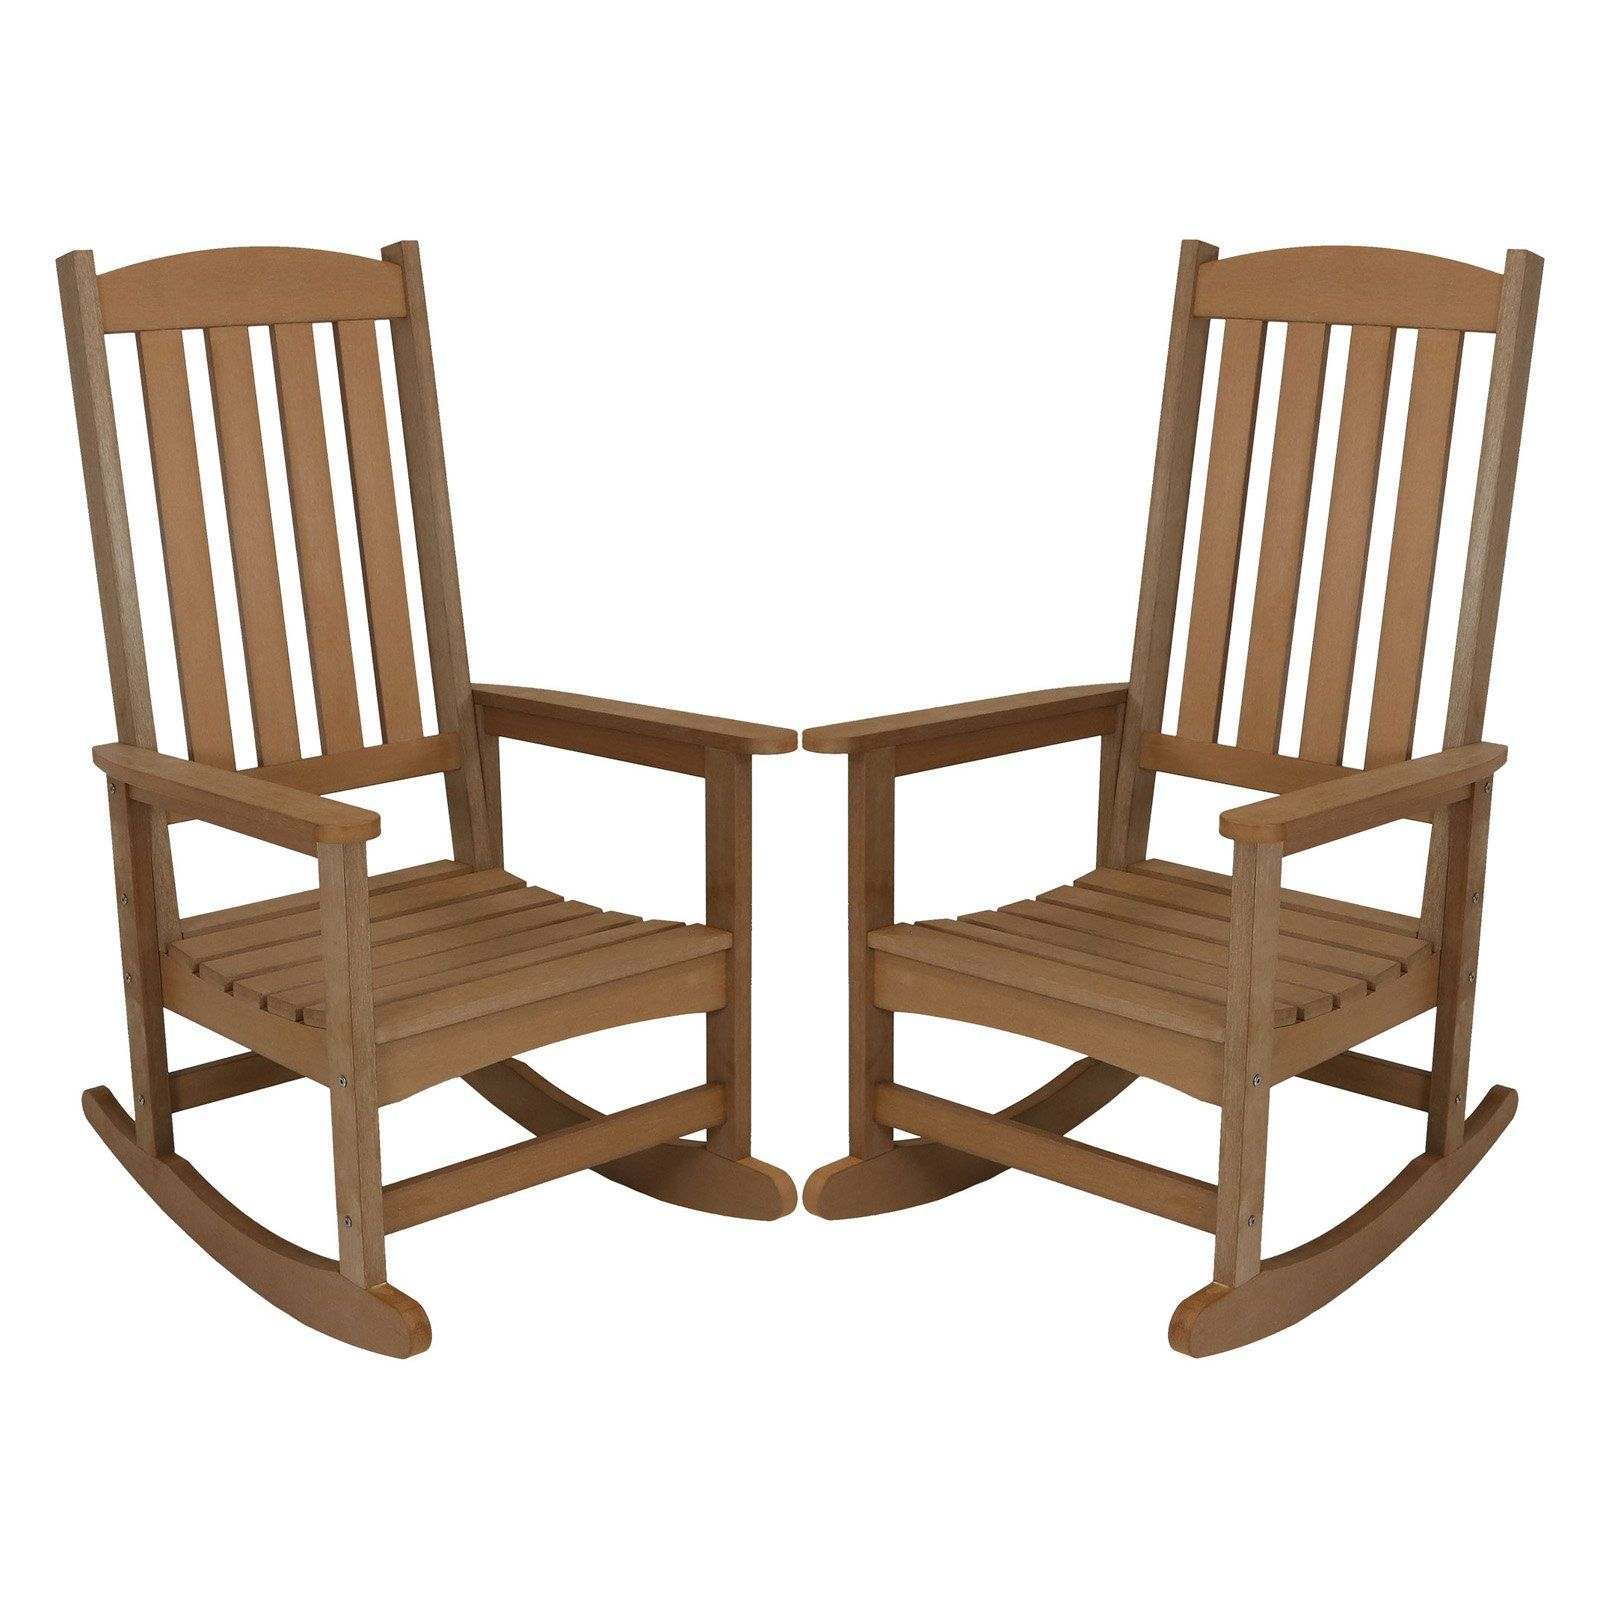 Sunnydaze Decor All Weather Recycled Plastic Faux Wood Outdoor Rocking Chair Set Of 2